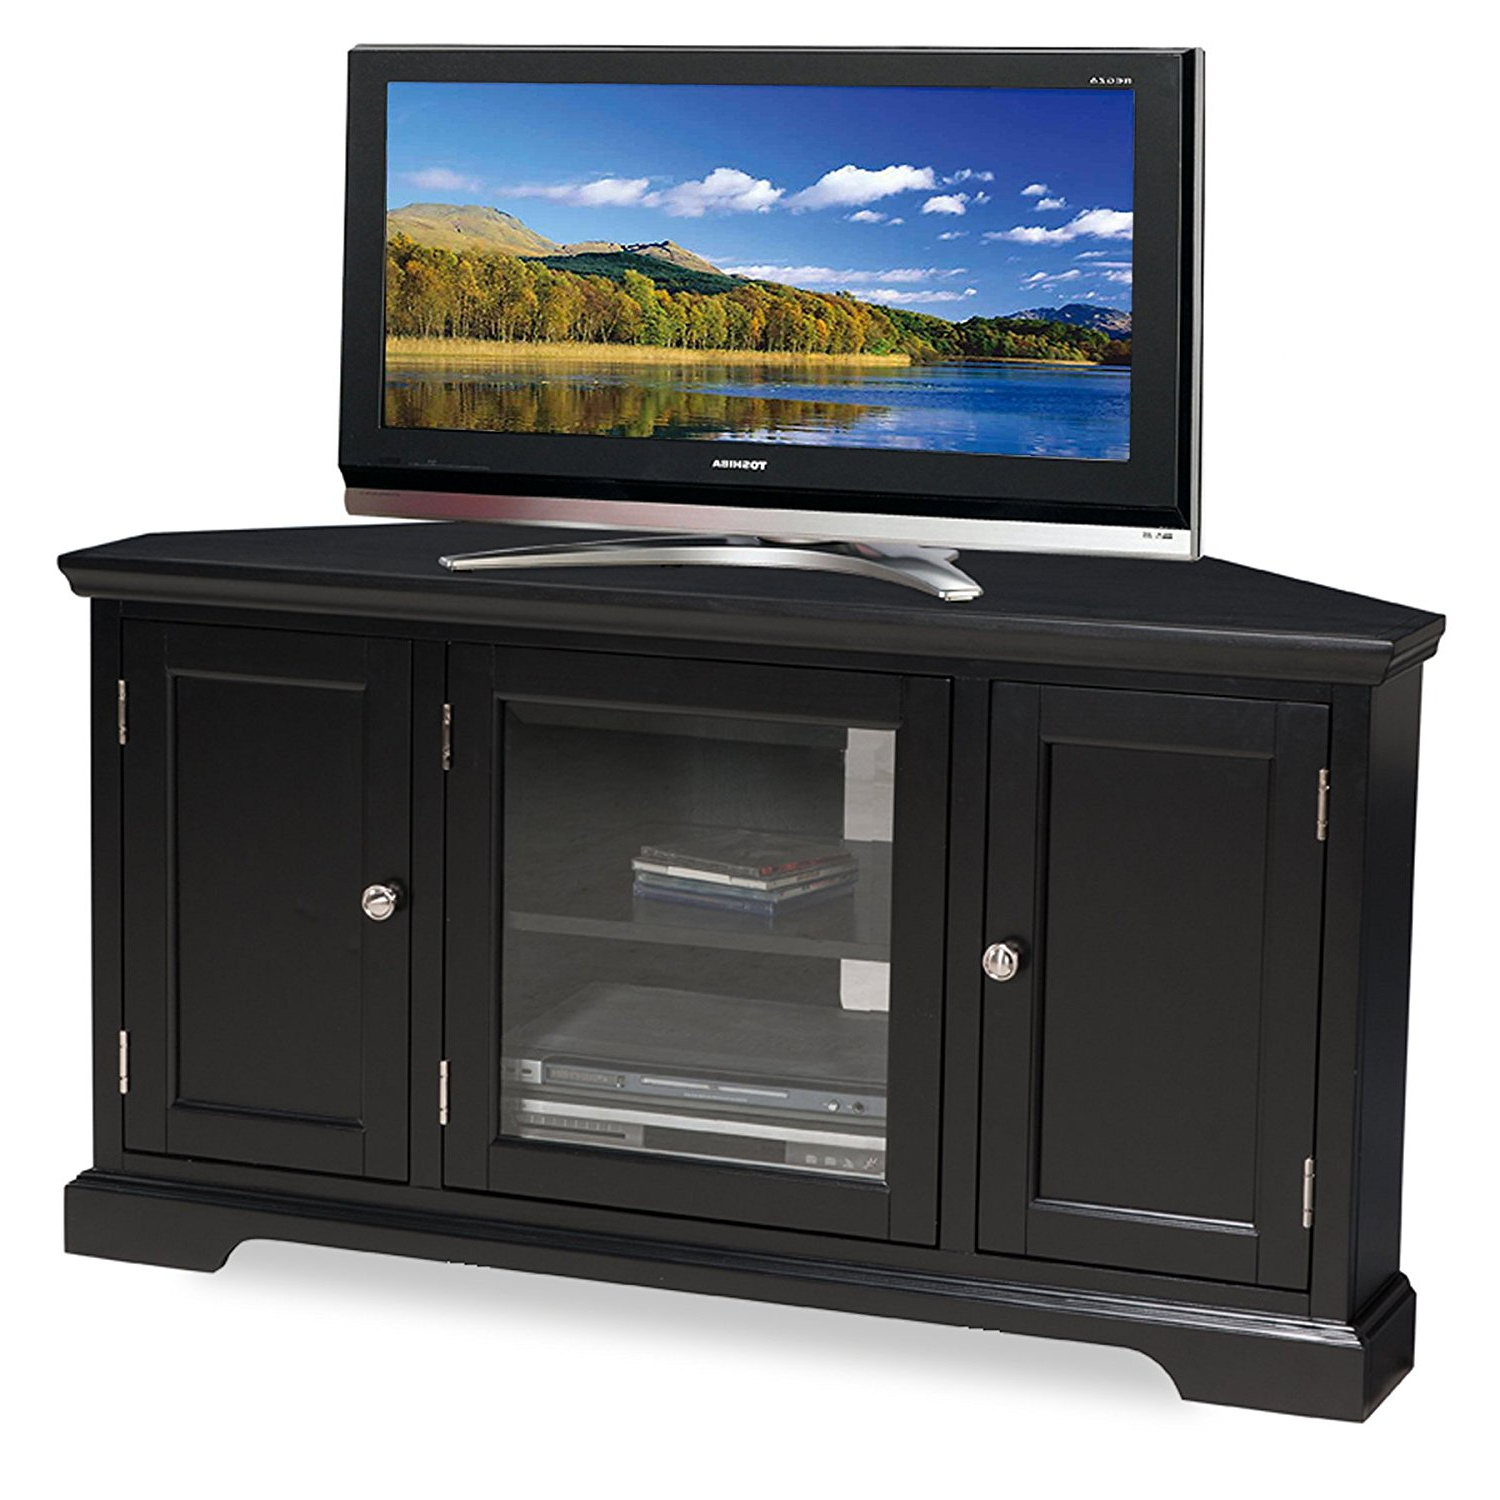 Current Leick 46 Inch Hardwood Corner Tv Stand In Black Finish, 83385 New With Regard To Black Corner Tv Cabinets (View 12 of 20)